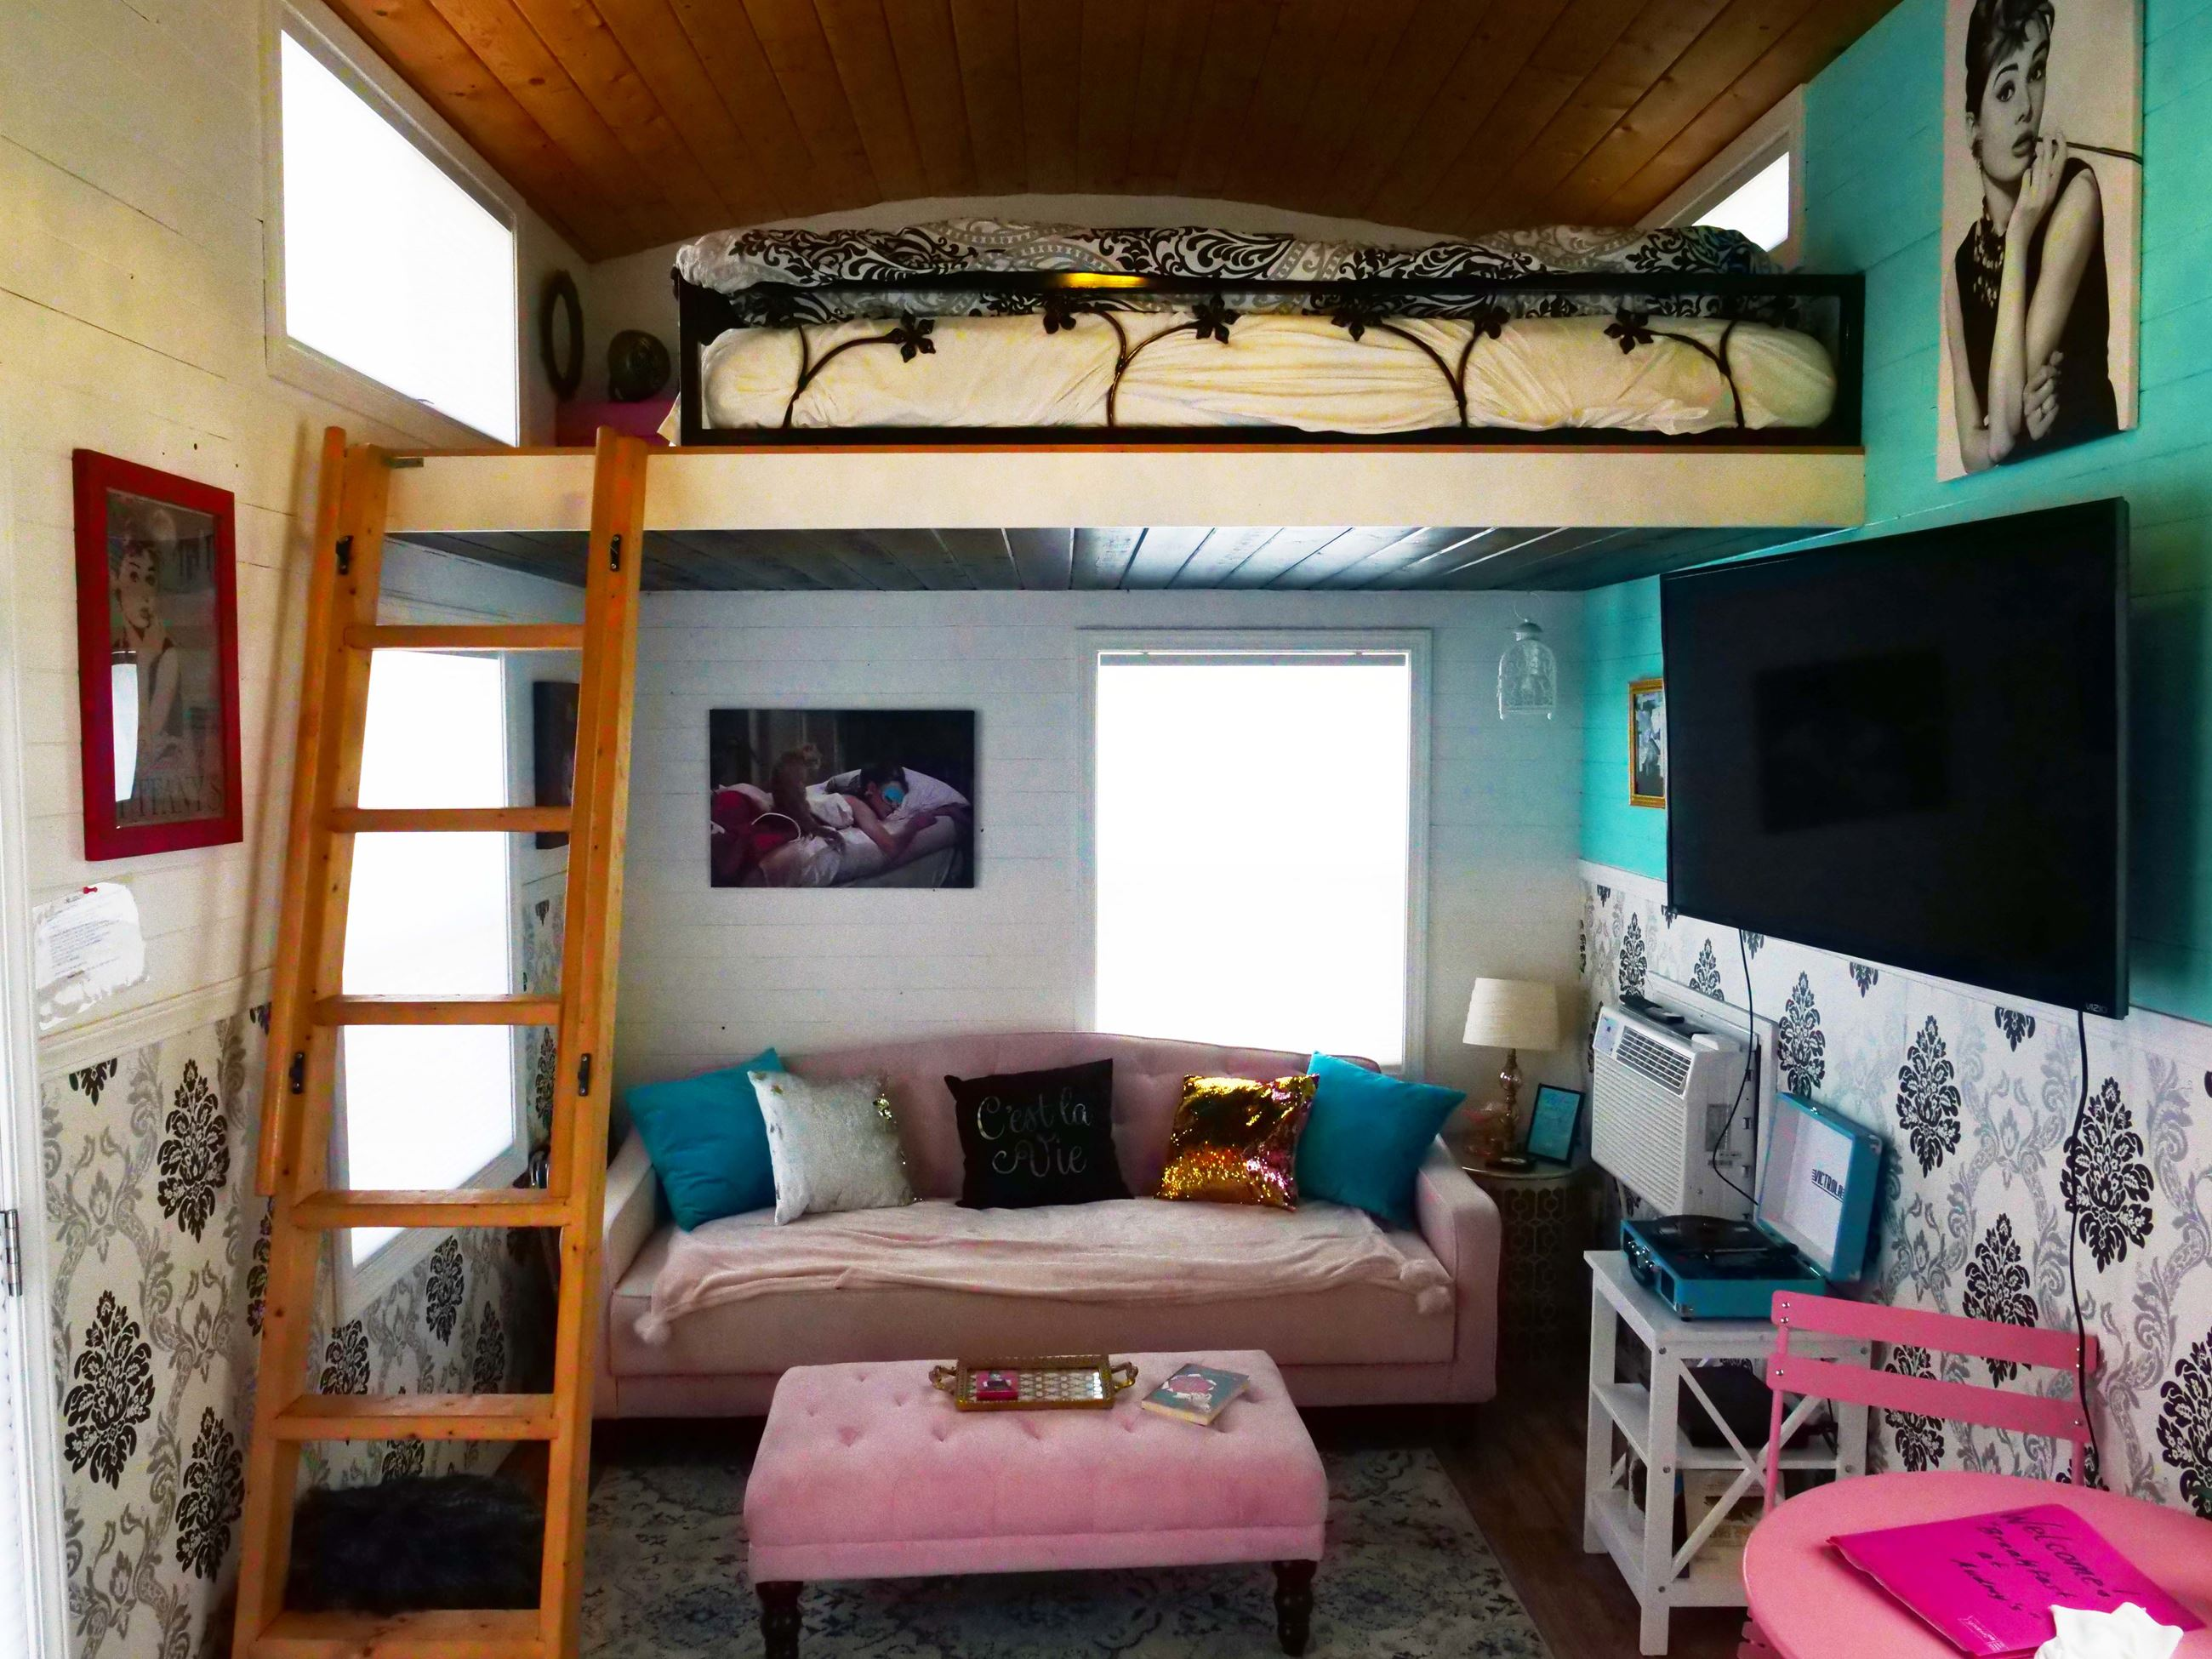 Couch and Bed at Audrey Hepburn themed tiny home at Docs Drive-In Theatre